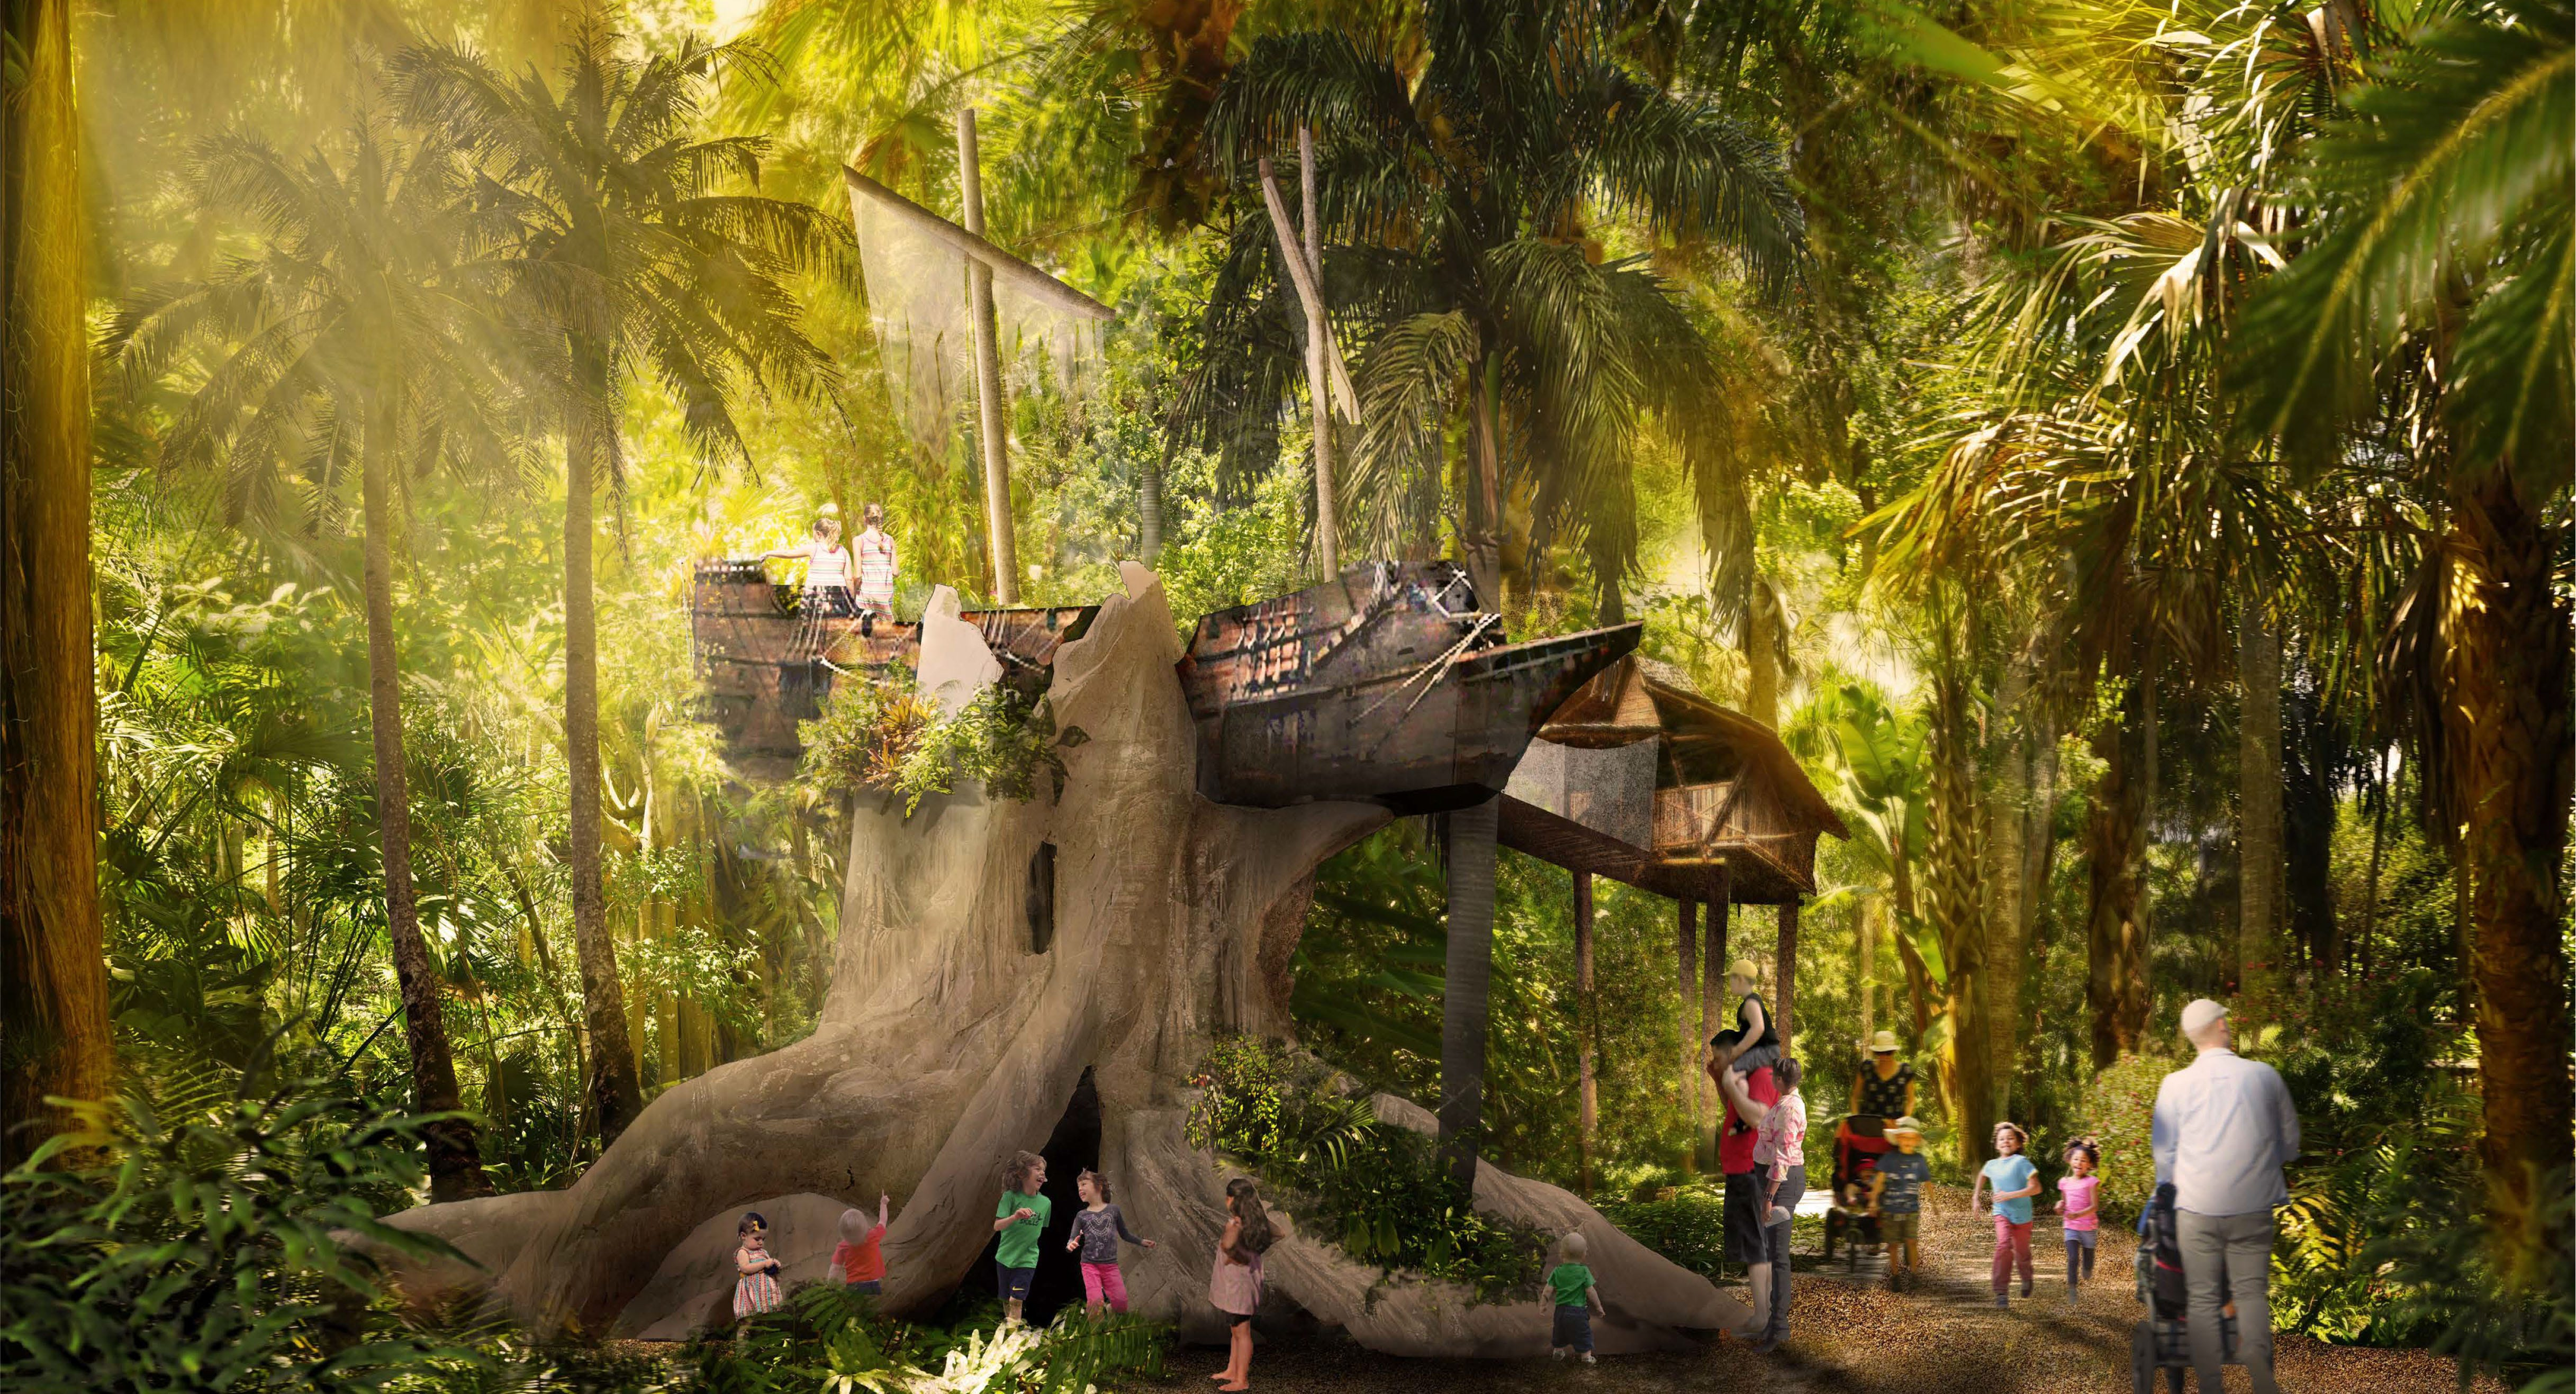 A Pirate Ship Treehouse Will Be One Of The Features